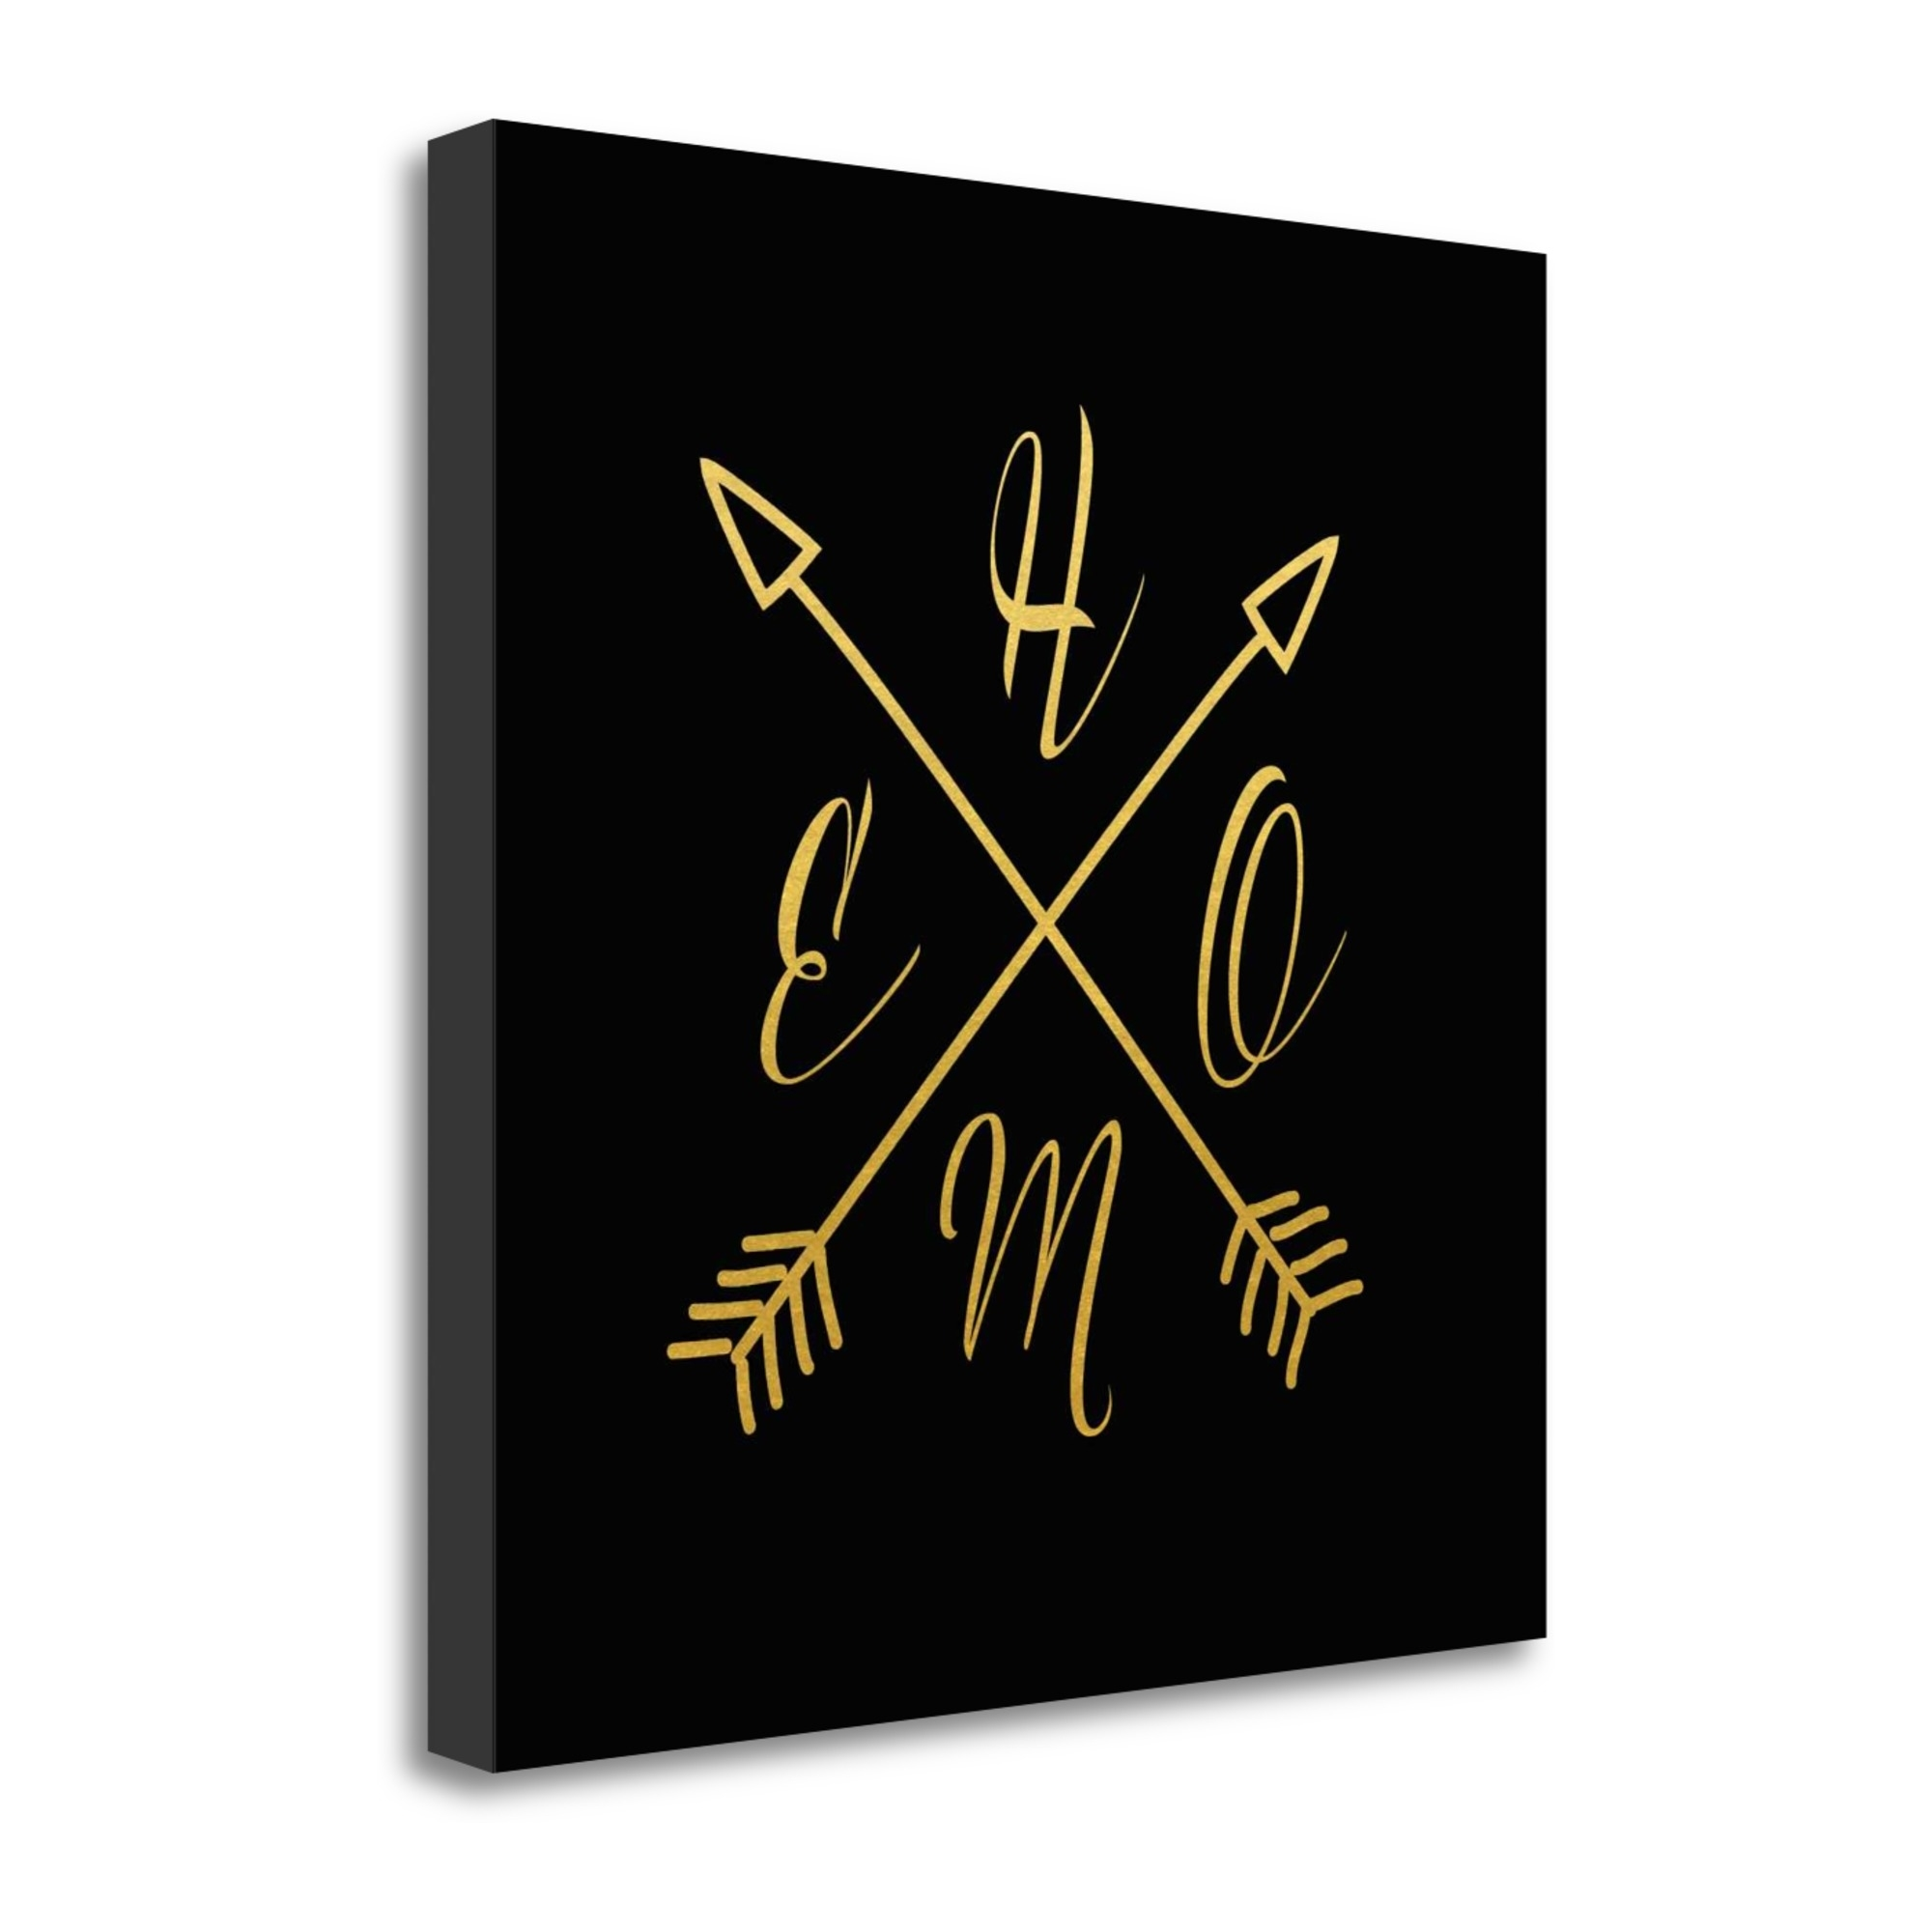 "Home Arrows By Tara Moss, 20"" x 20\"" Fine Art Giclee Print on Gallery Wrap Canvas, Ready to Hang"